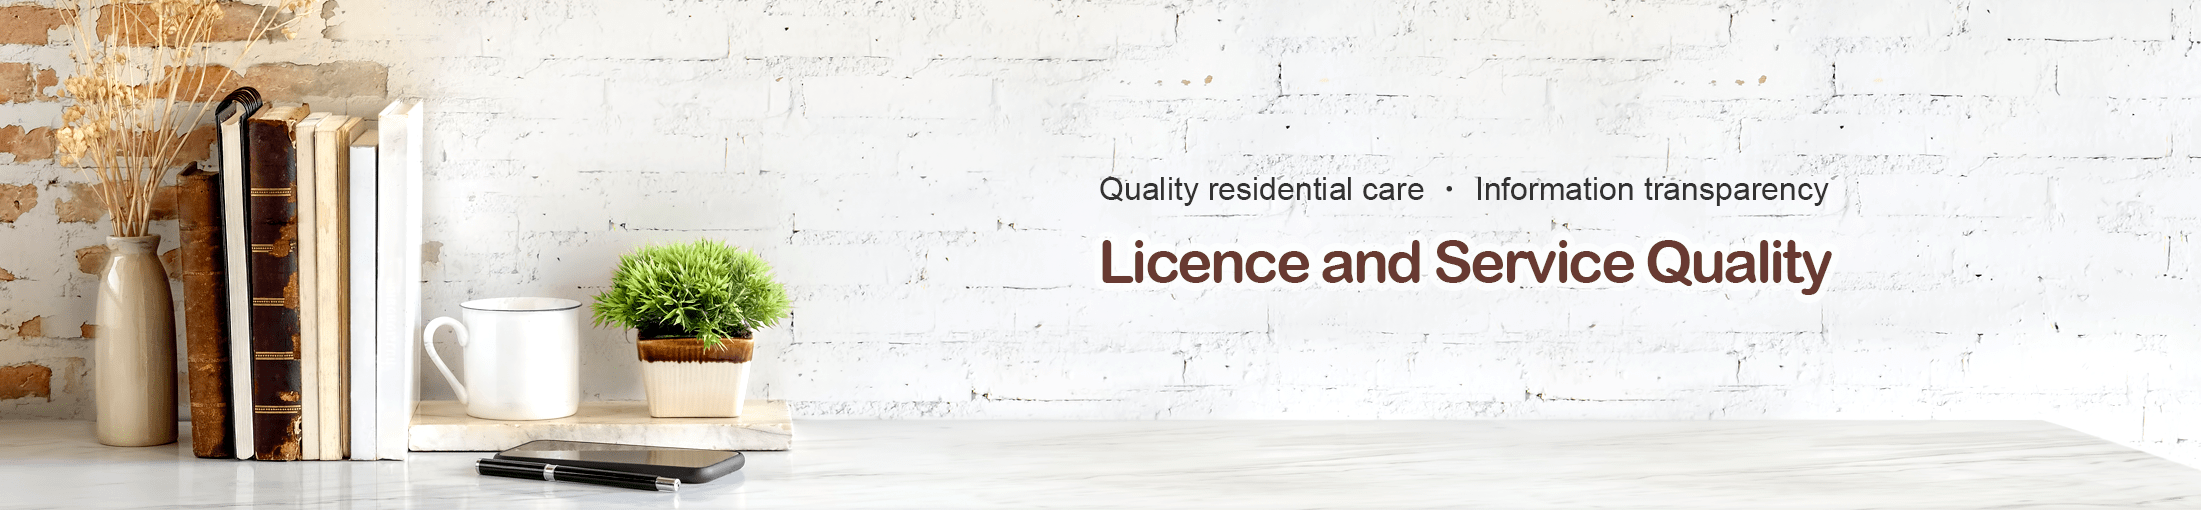 Licence and Service Quality